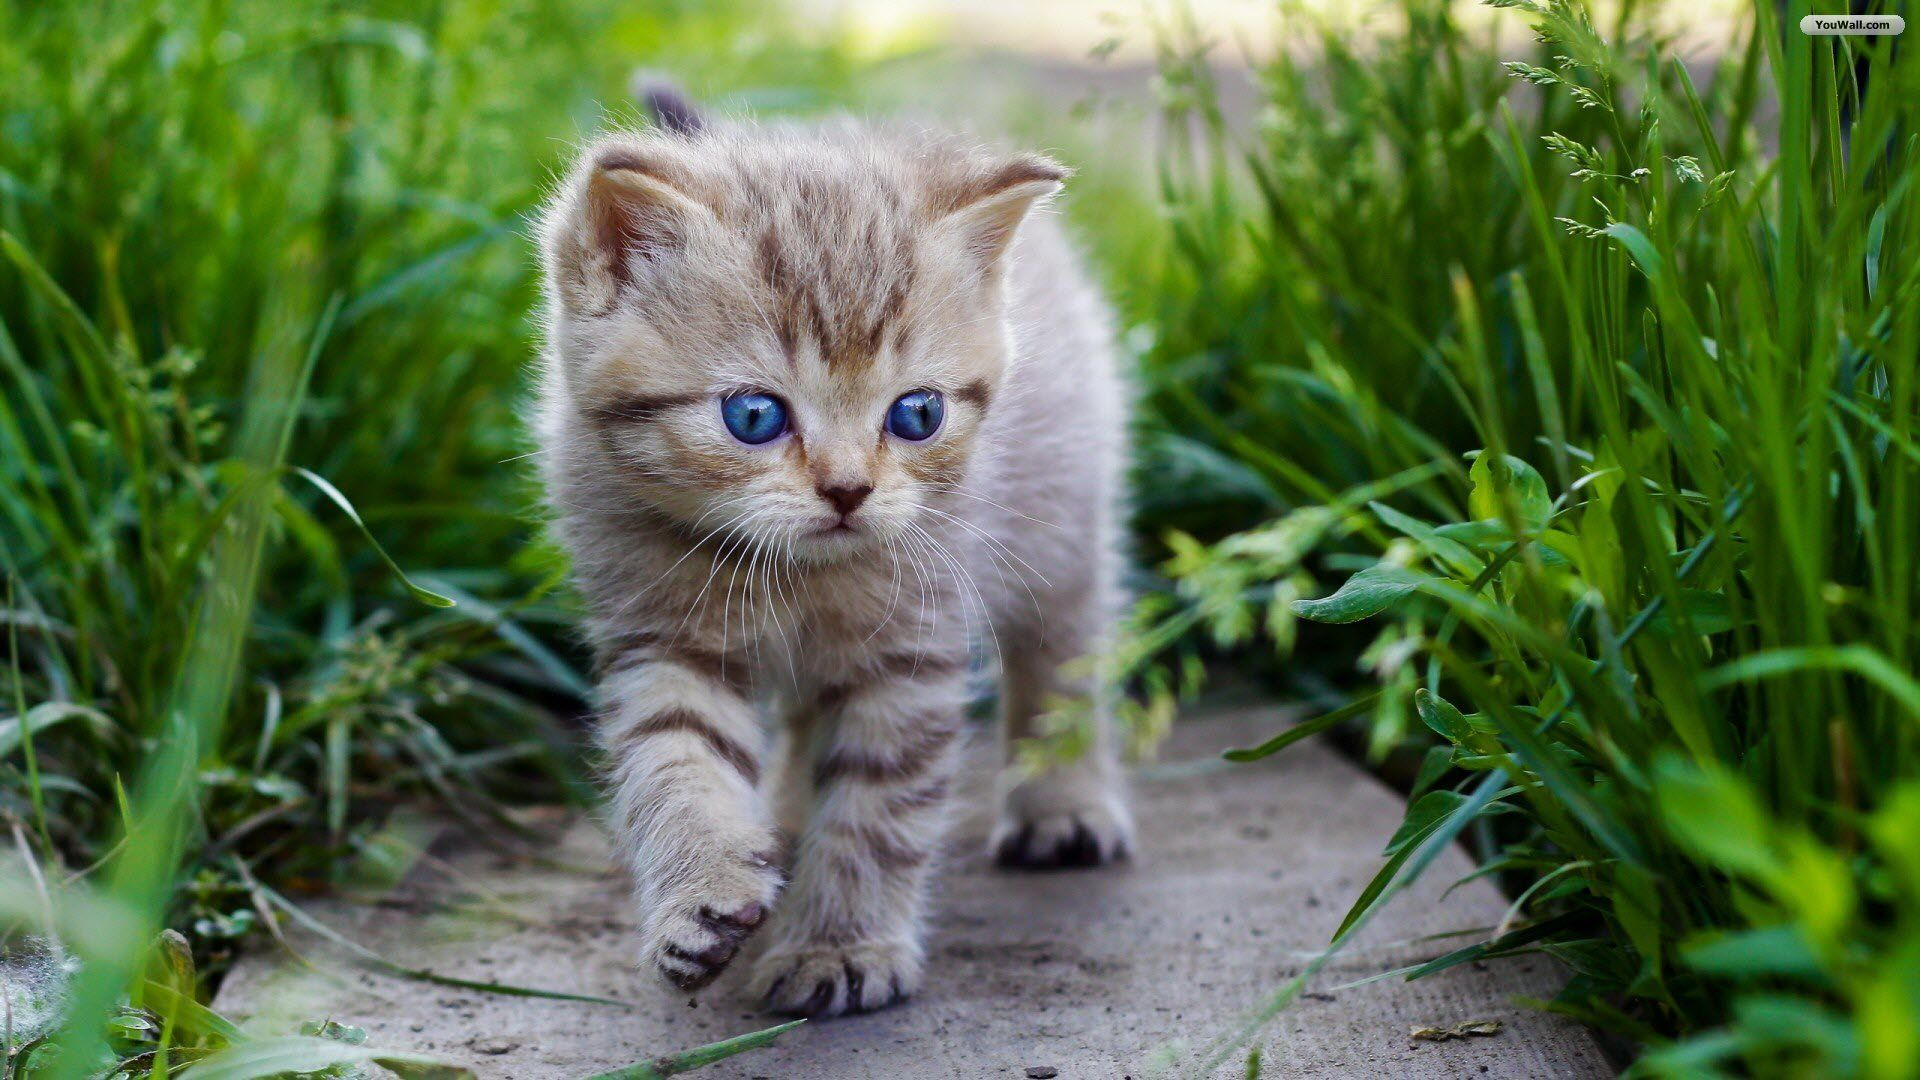 Youwall Lovely Cat Puppy Wallpaper Wallpaper Wallpapers Free